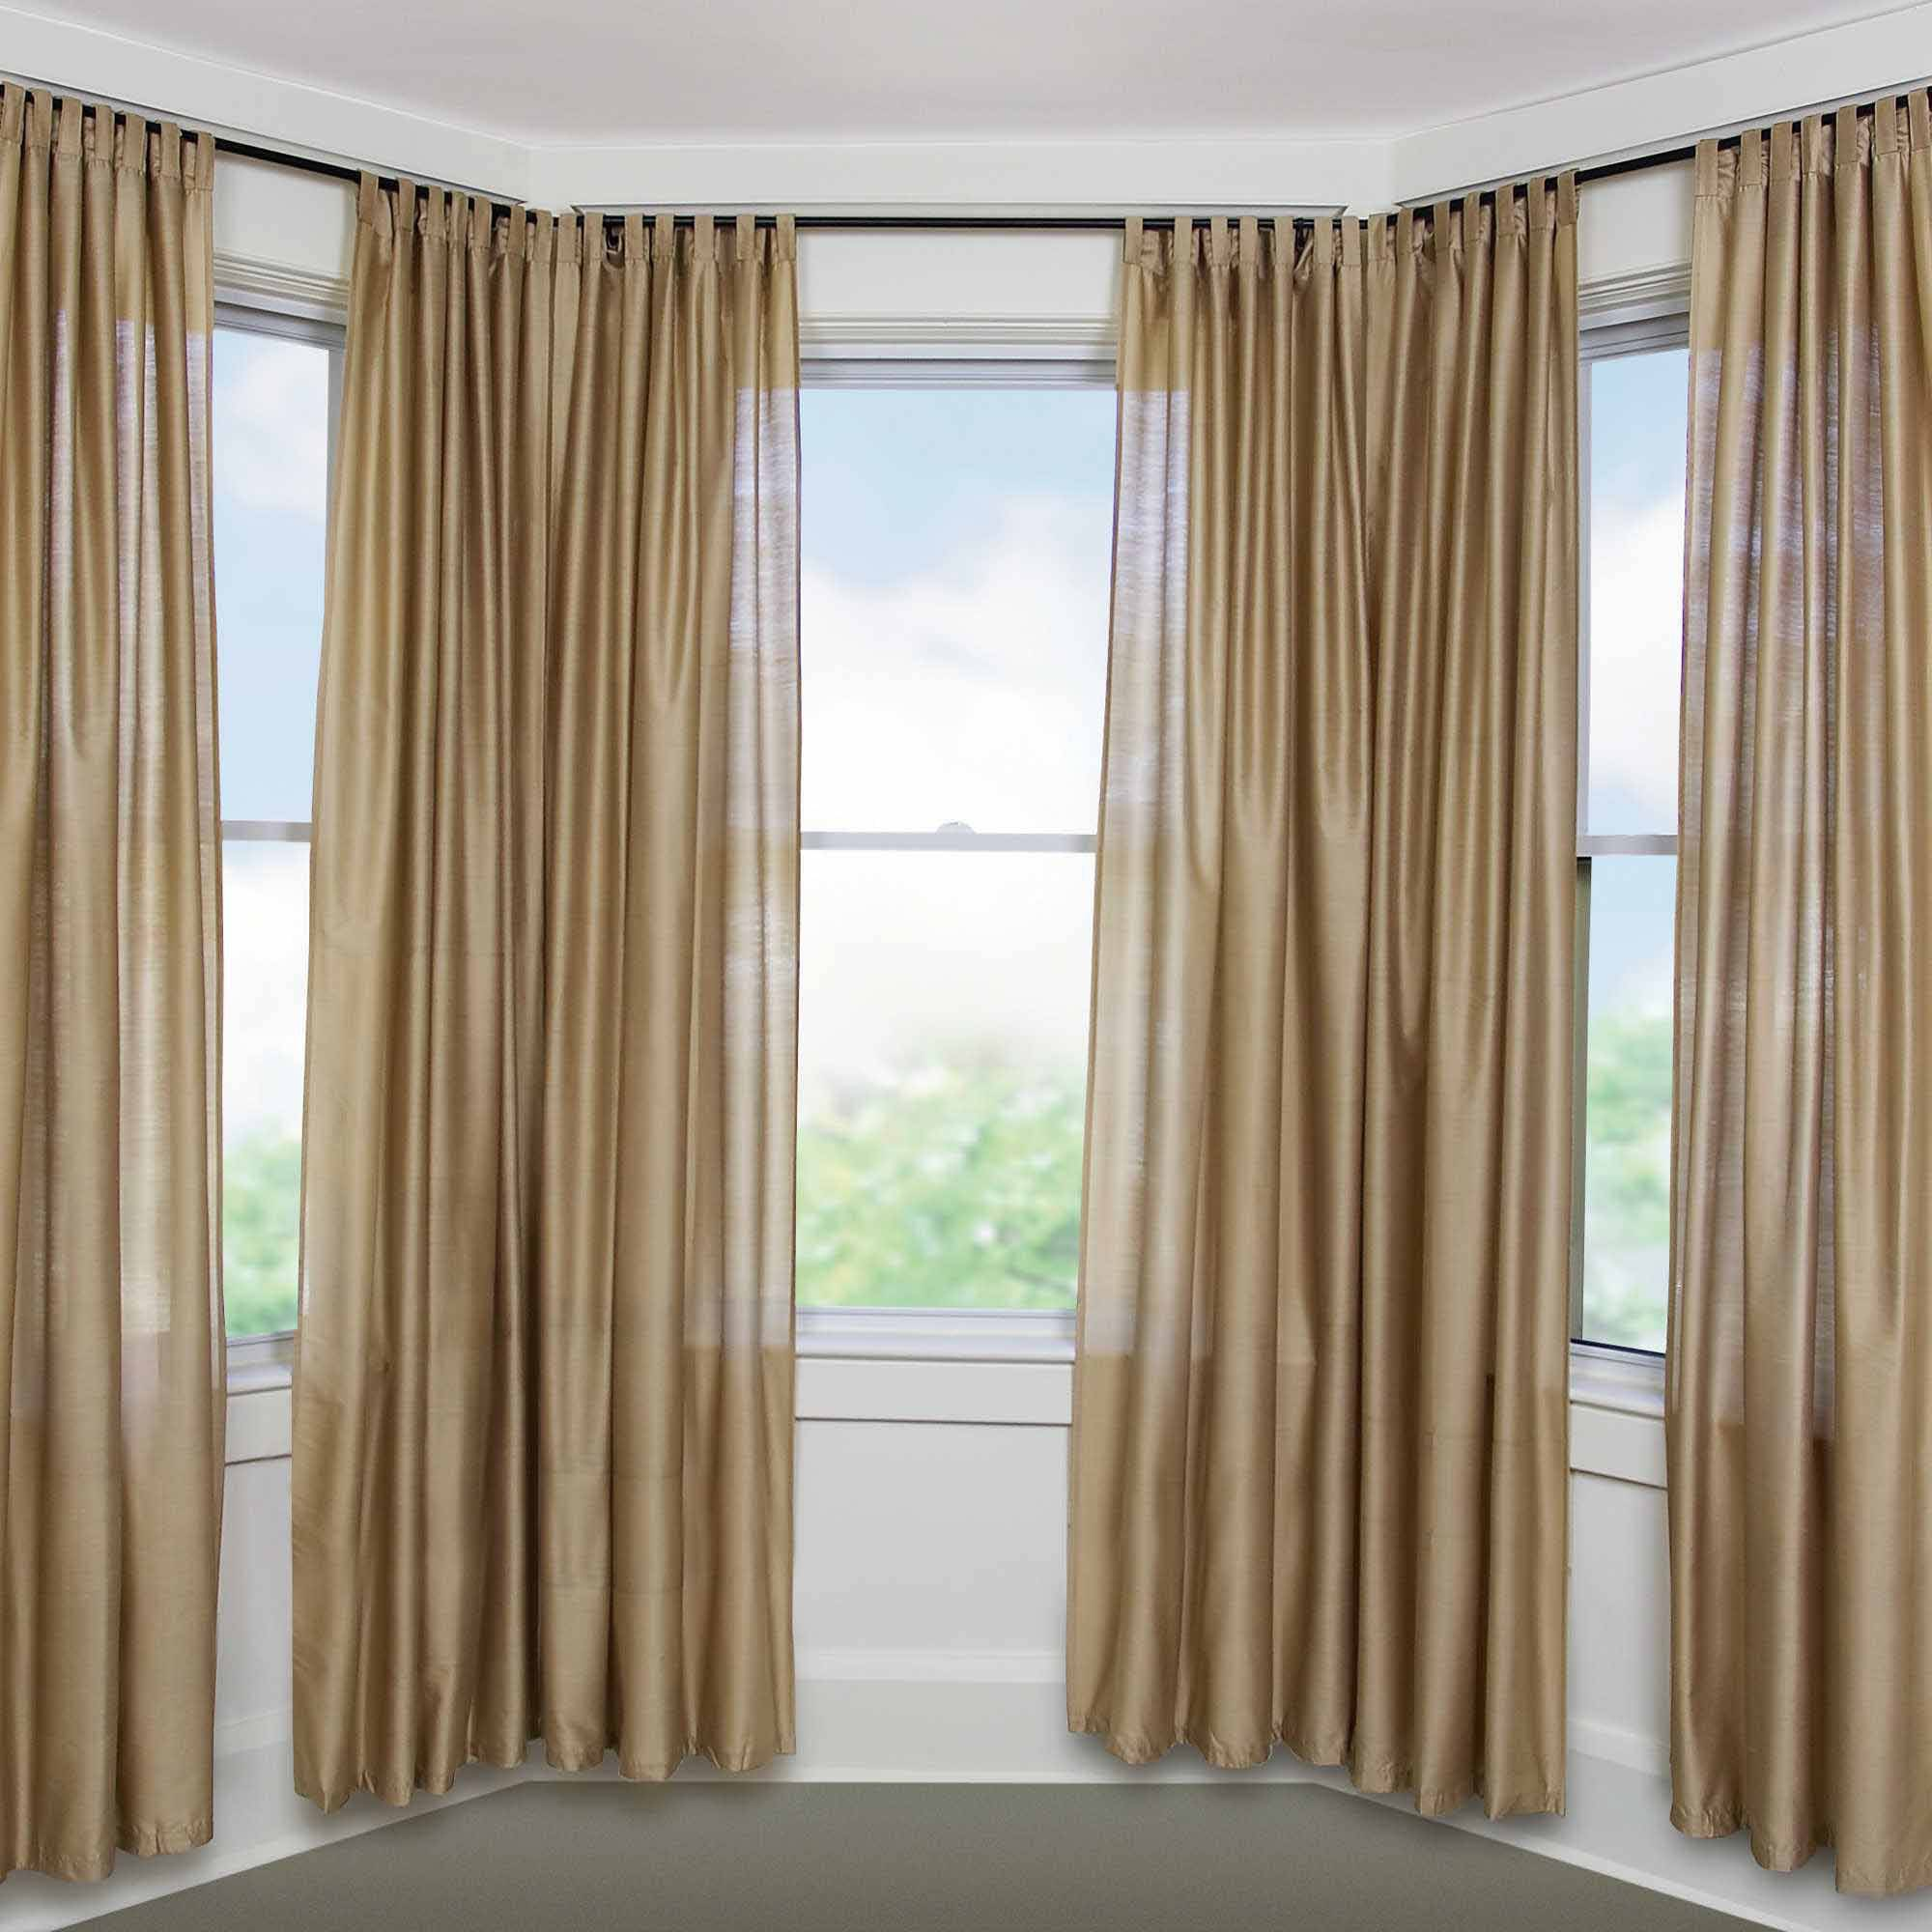 Blackout Drapes | Window Drapes | Better Homes and Gardens Curtains